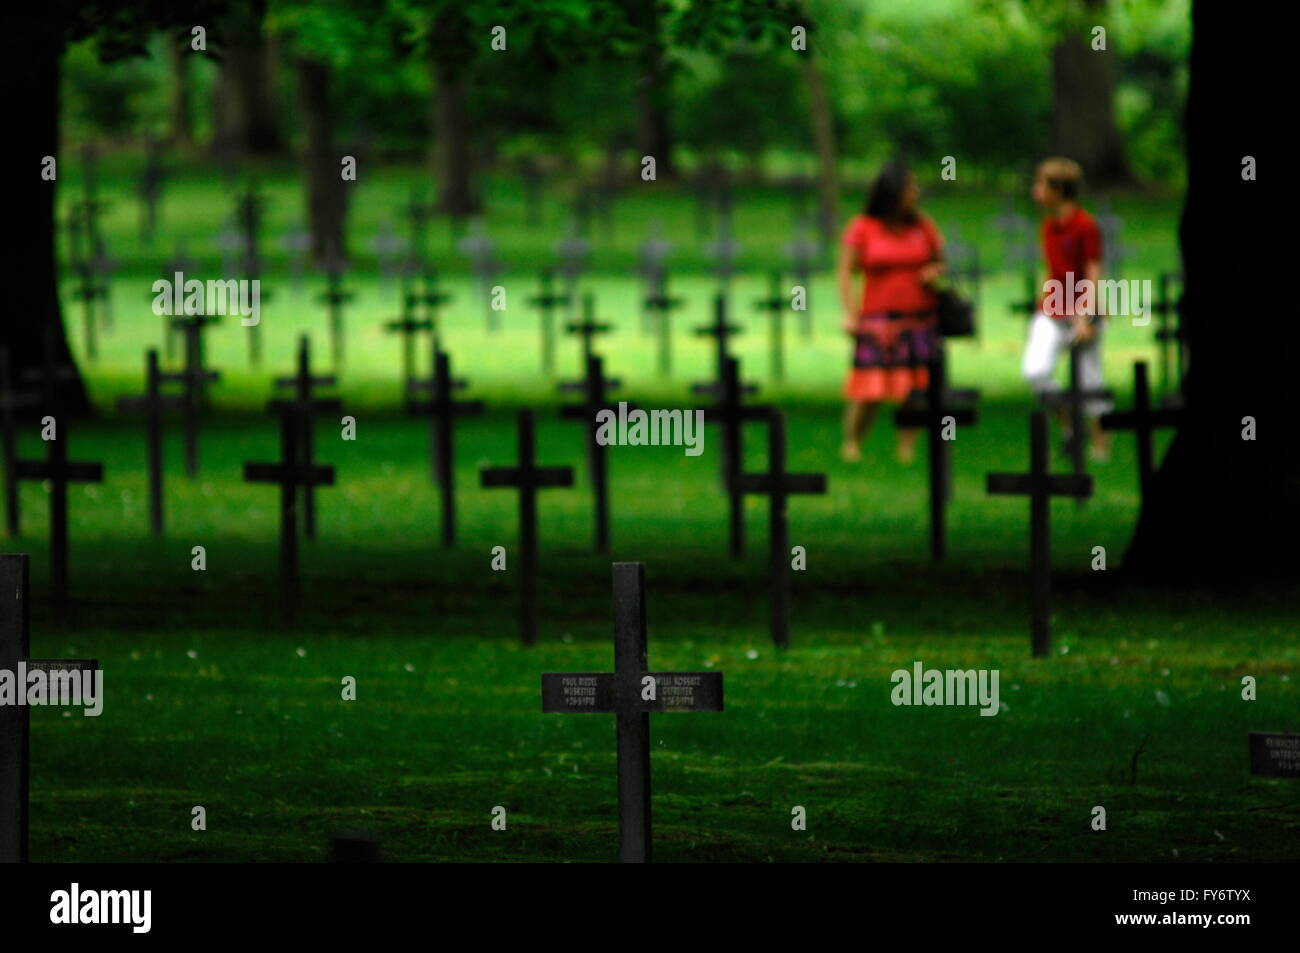 AJAXNETPHOTO. 2012. SAINT QUENTIN, FRANCE. - GERMAN MILITARY CEMETERY - VISITING THE SOLDATENFRIEDHOF - MILITARY - Stock Image